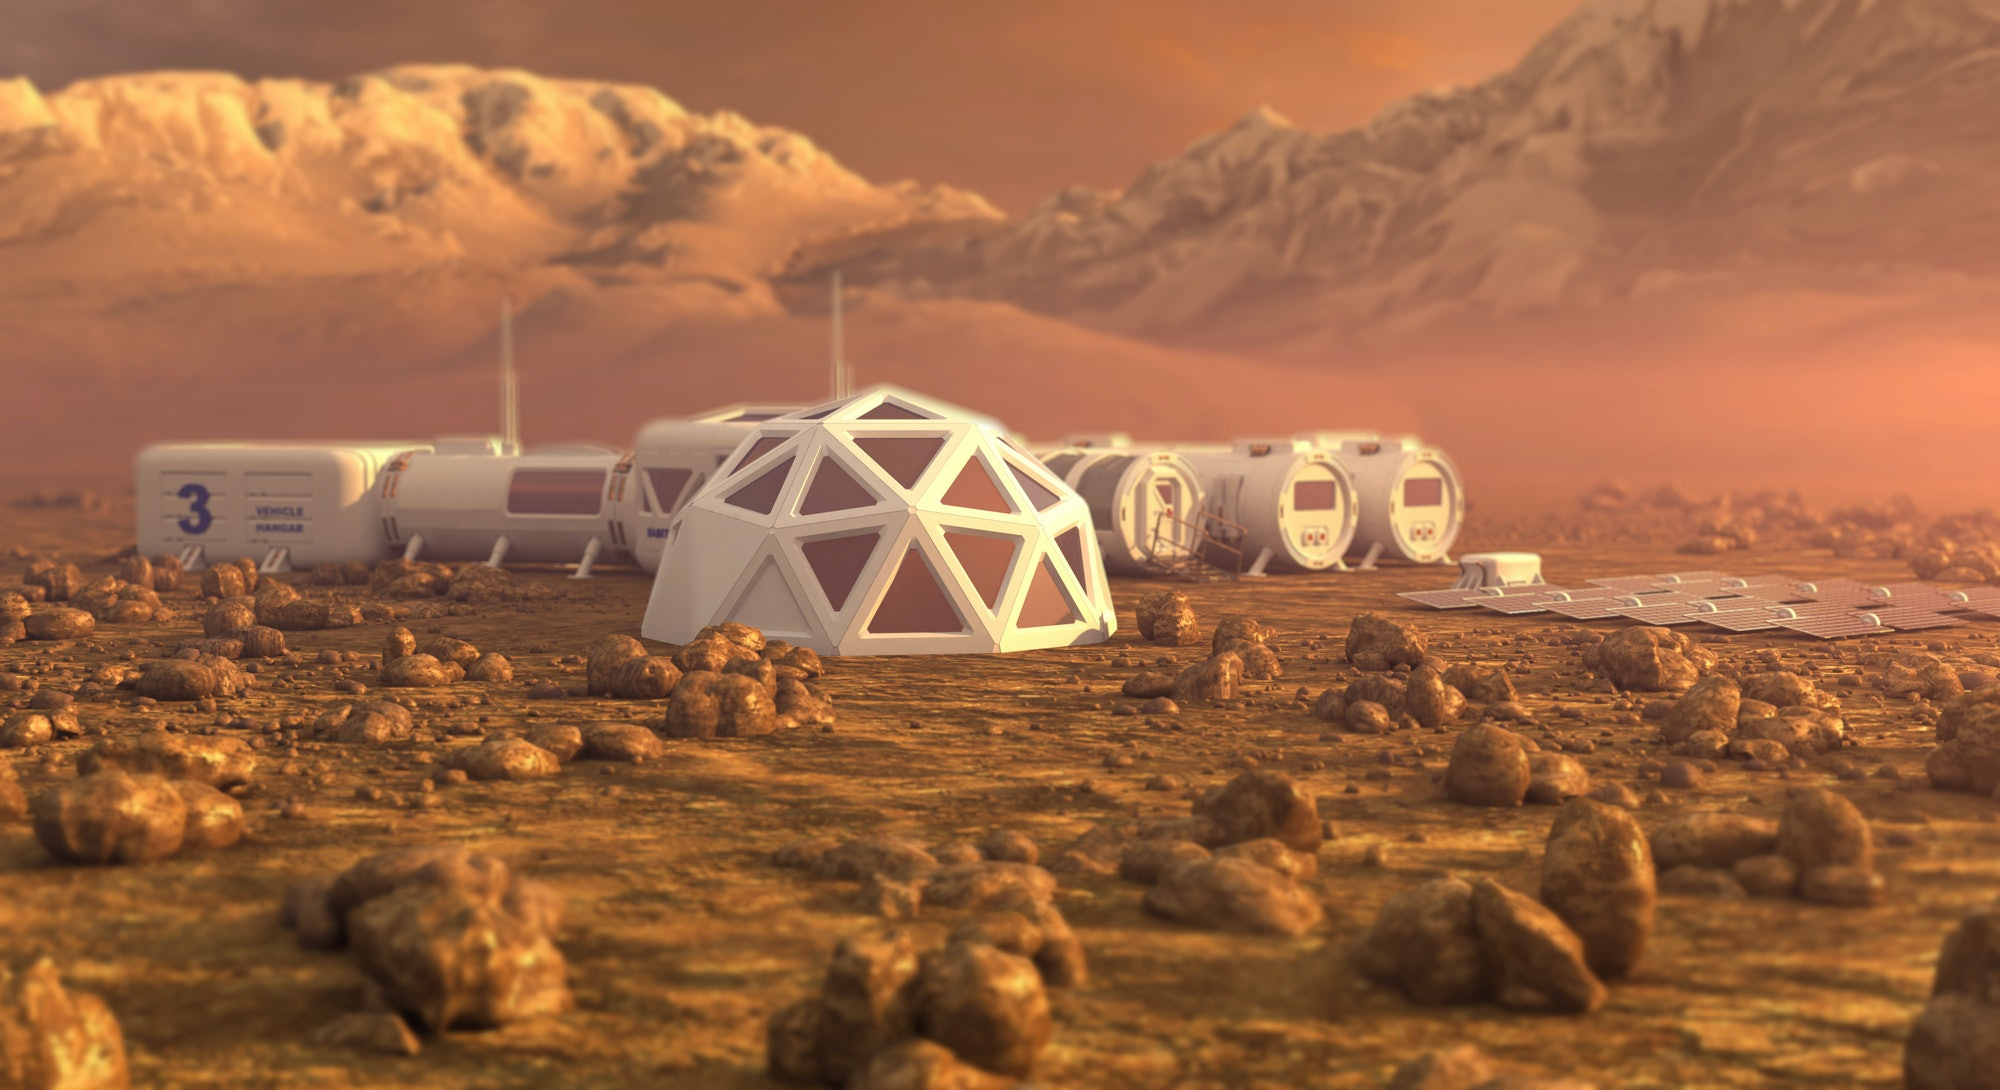 Mars planet satellite station orbit base martian colony space landscape. Elements of this image furnished by NASA.